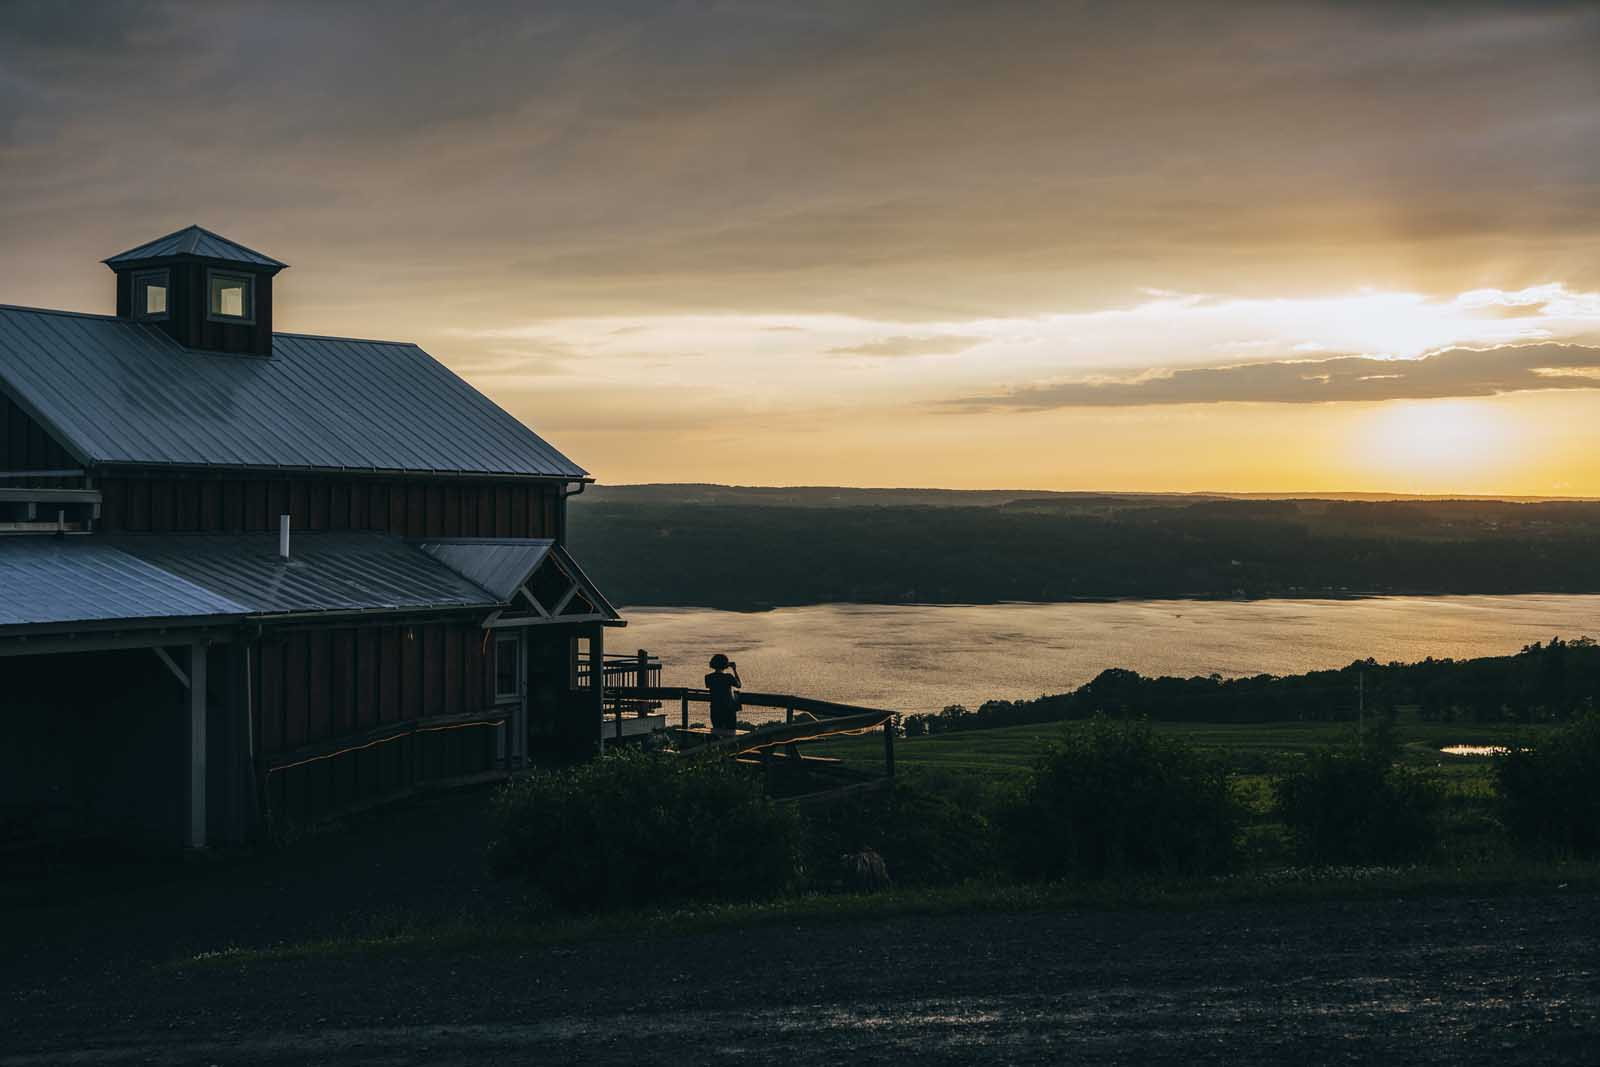 Sunset at Two goats brewery Seneca Lake